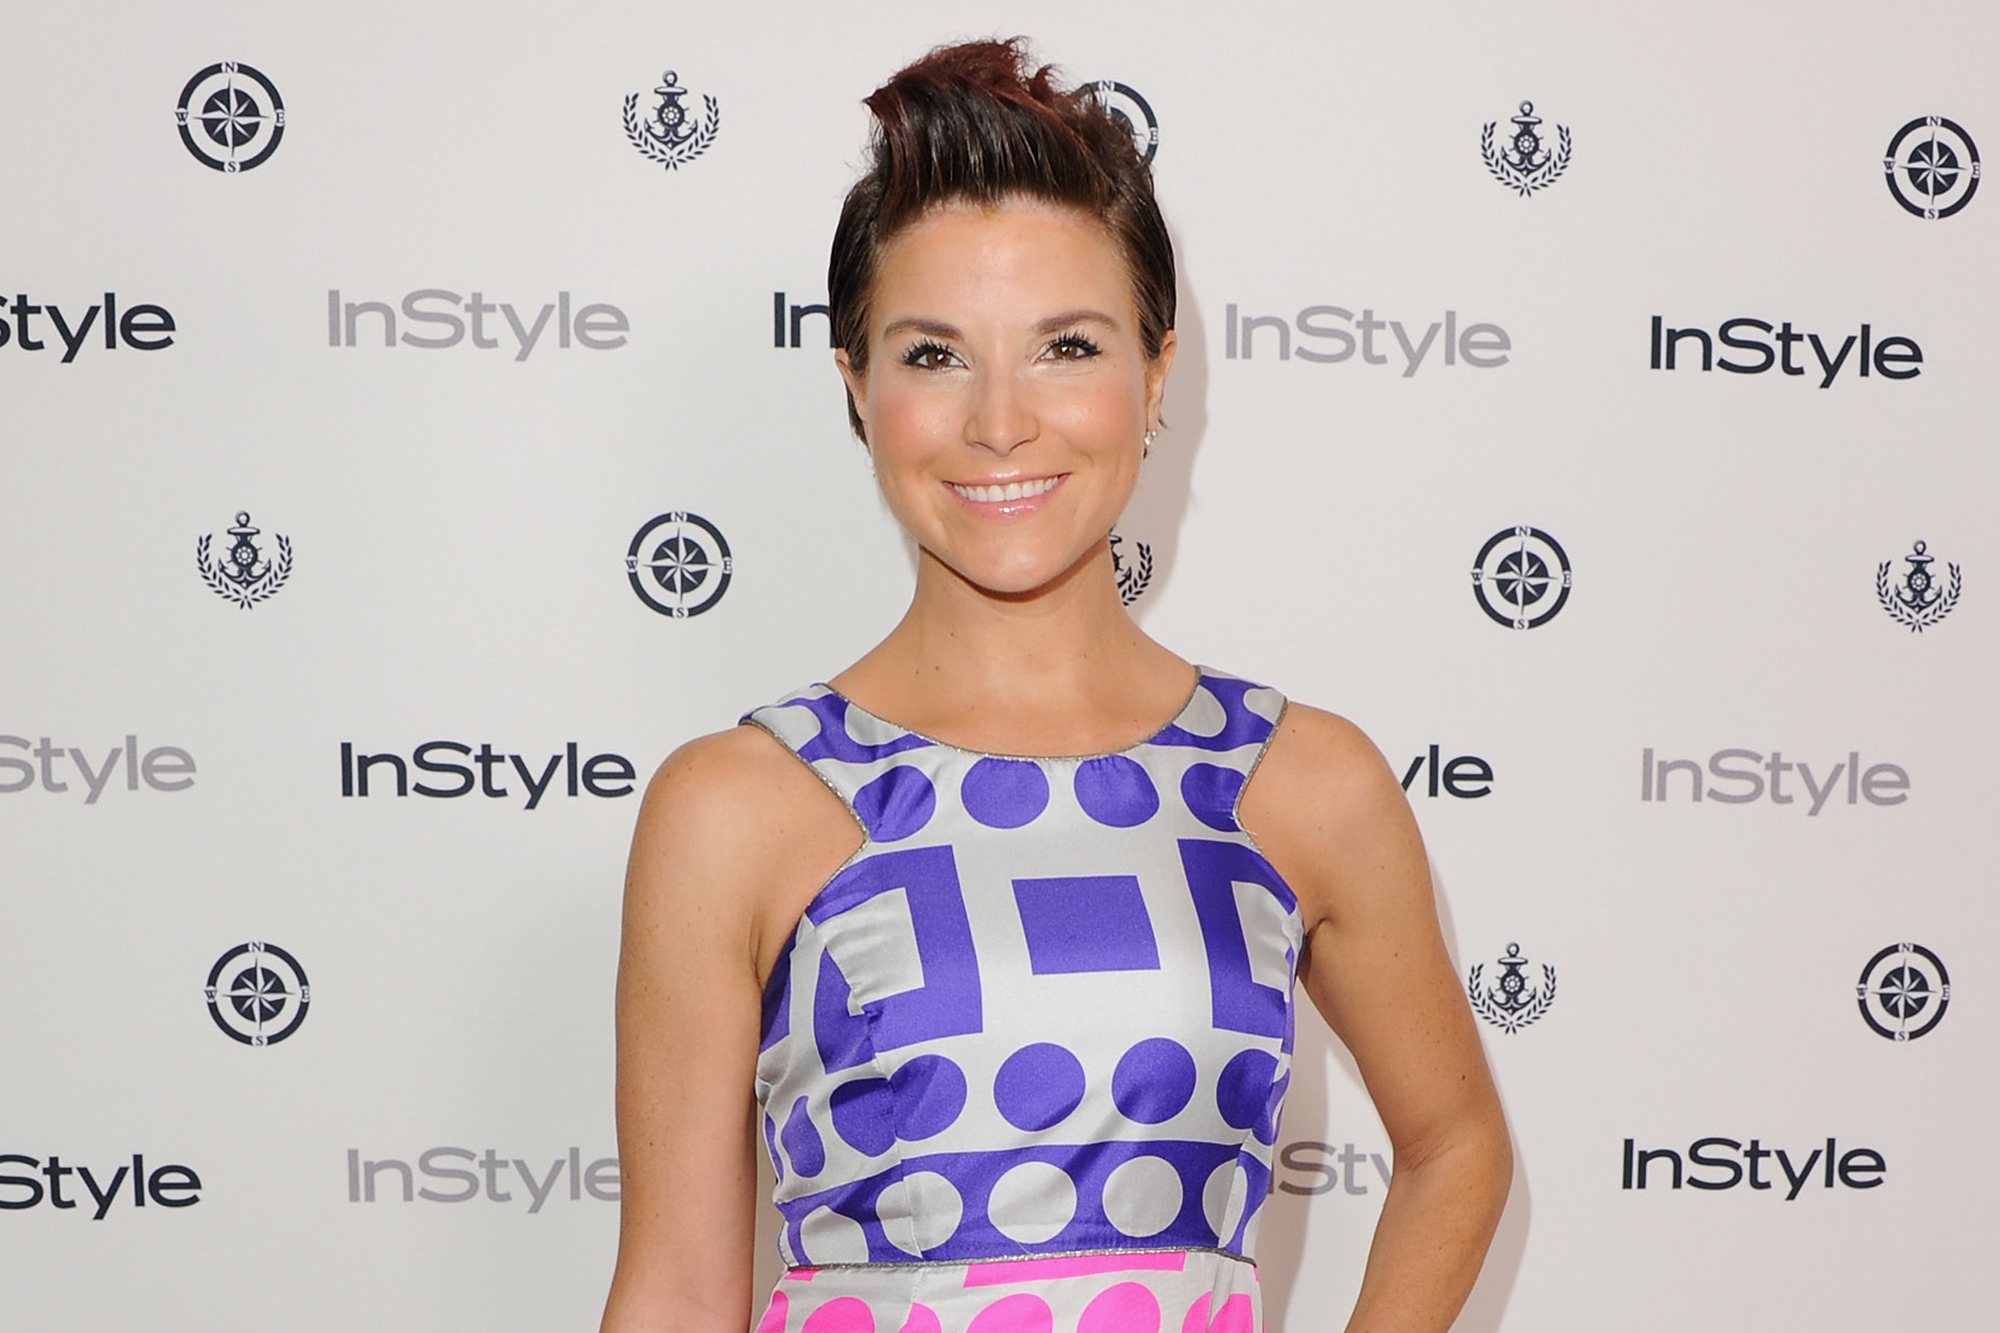 35. Diem Brown